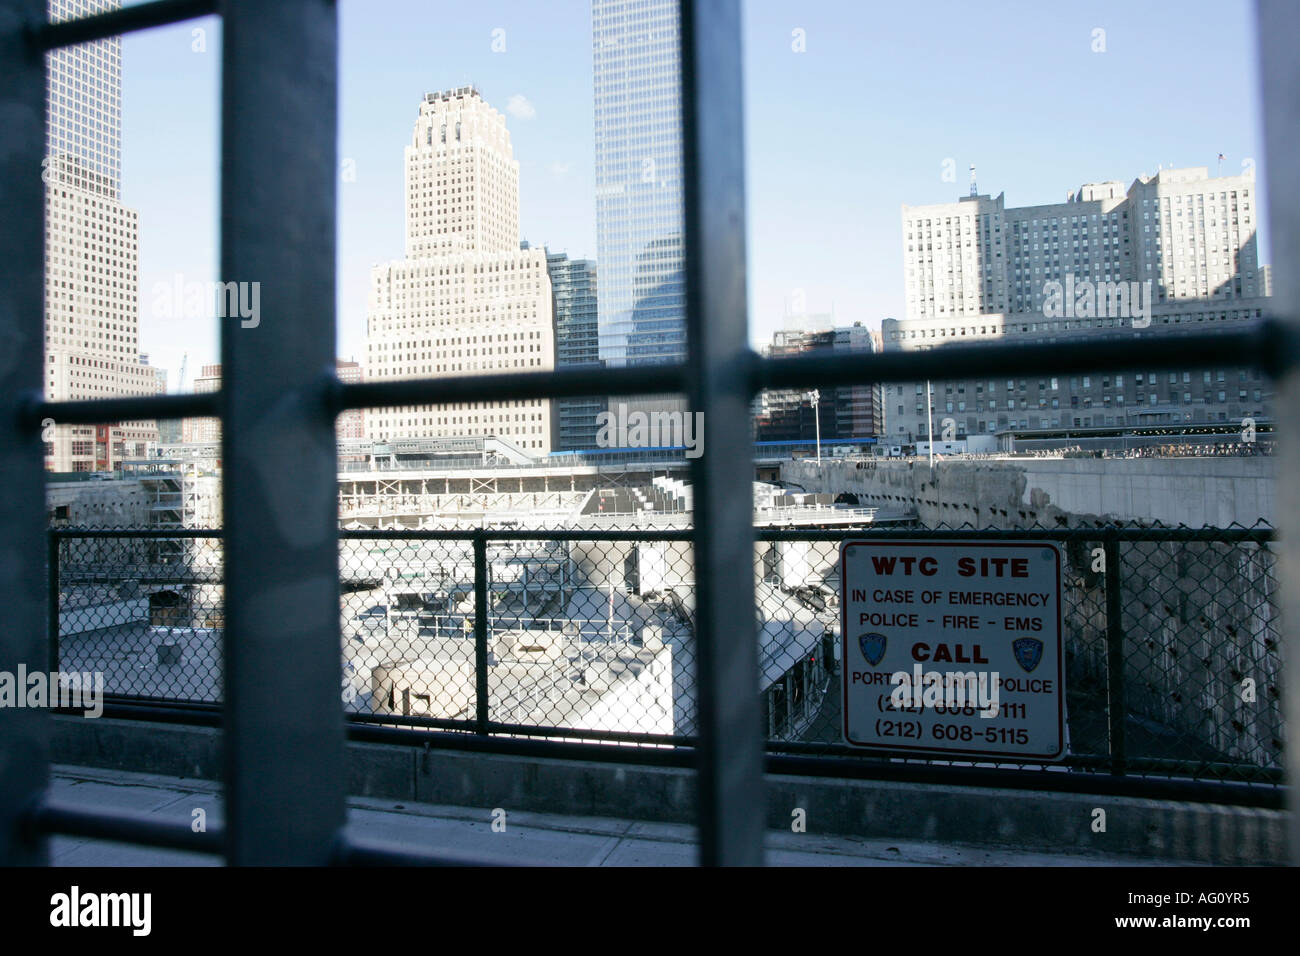 looking through the metal fence down onto the world trade center reconstruction site ground zero new york city new york USA - Stock Image